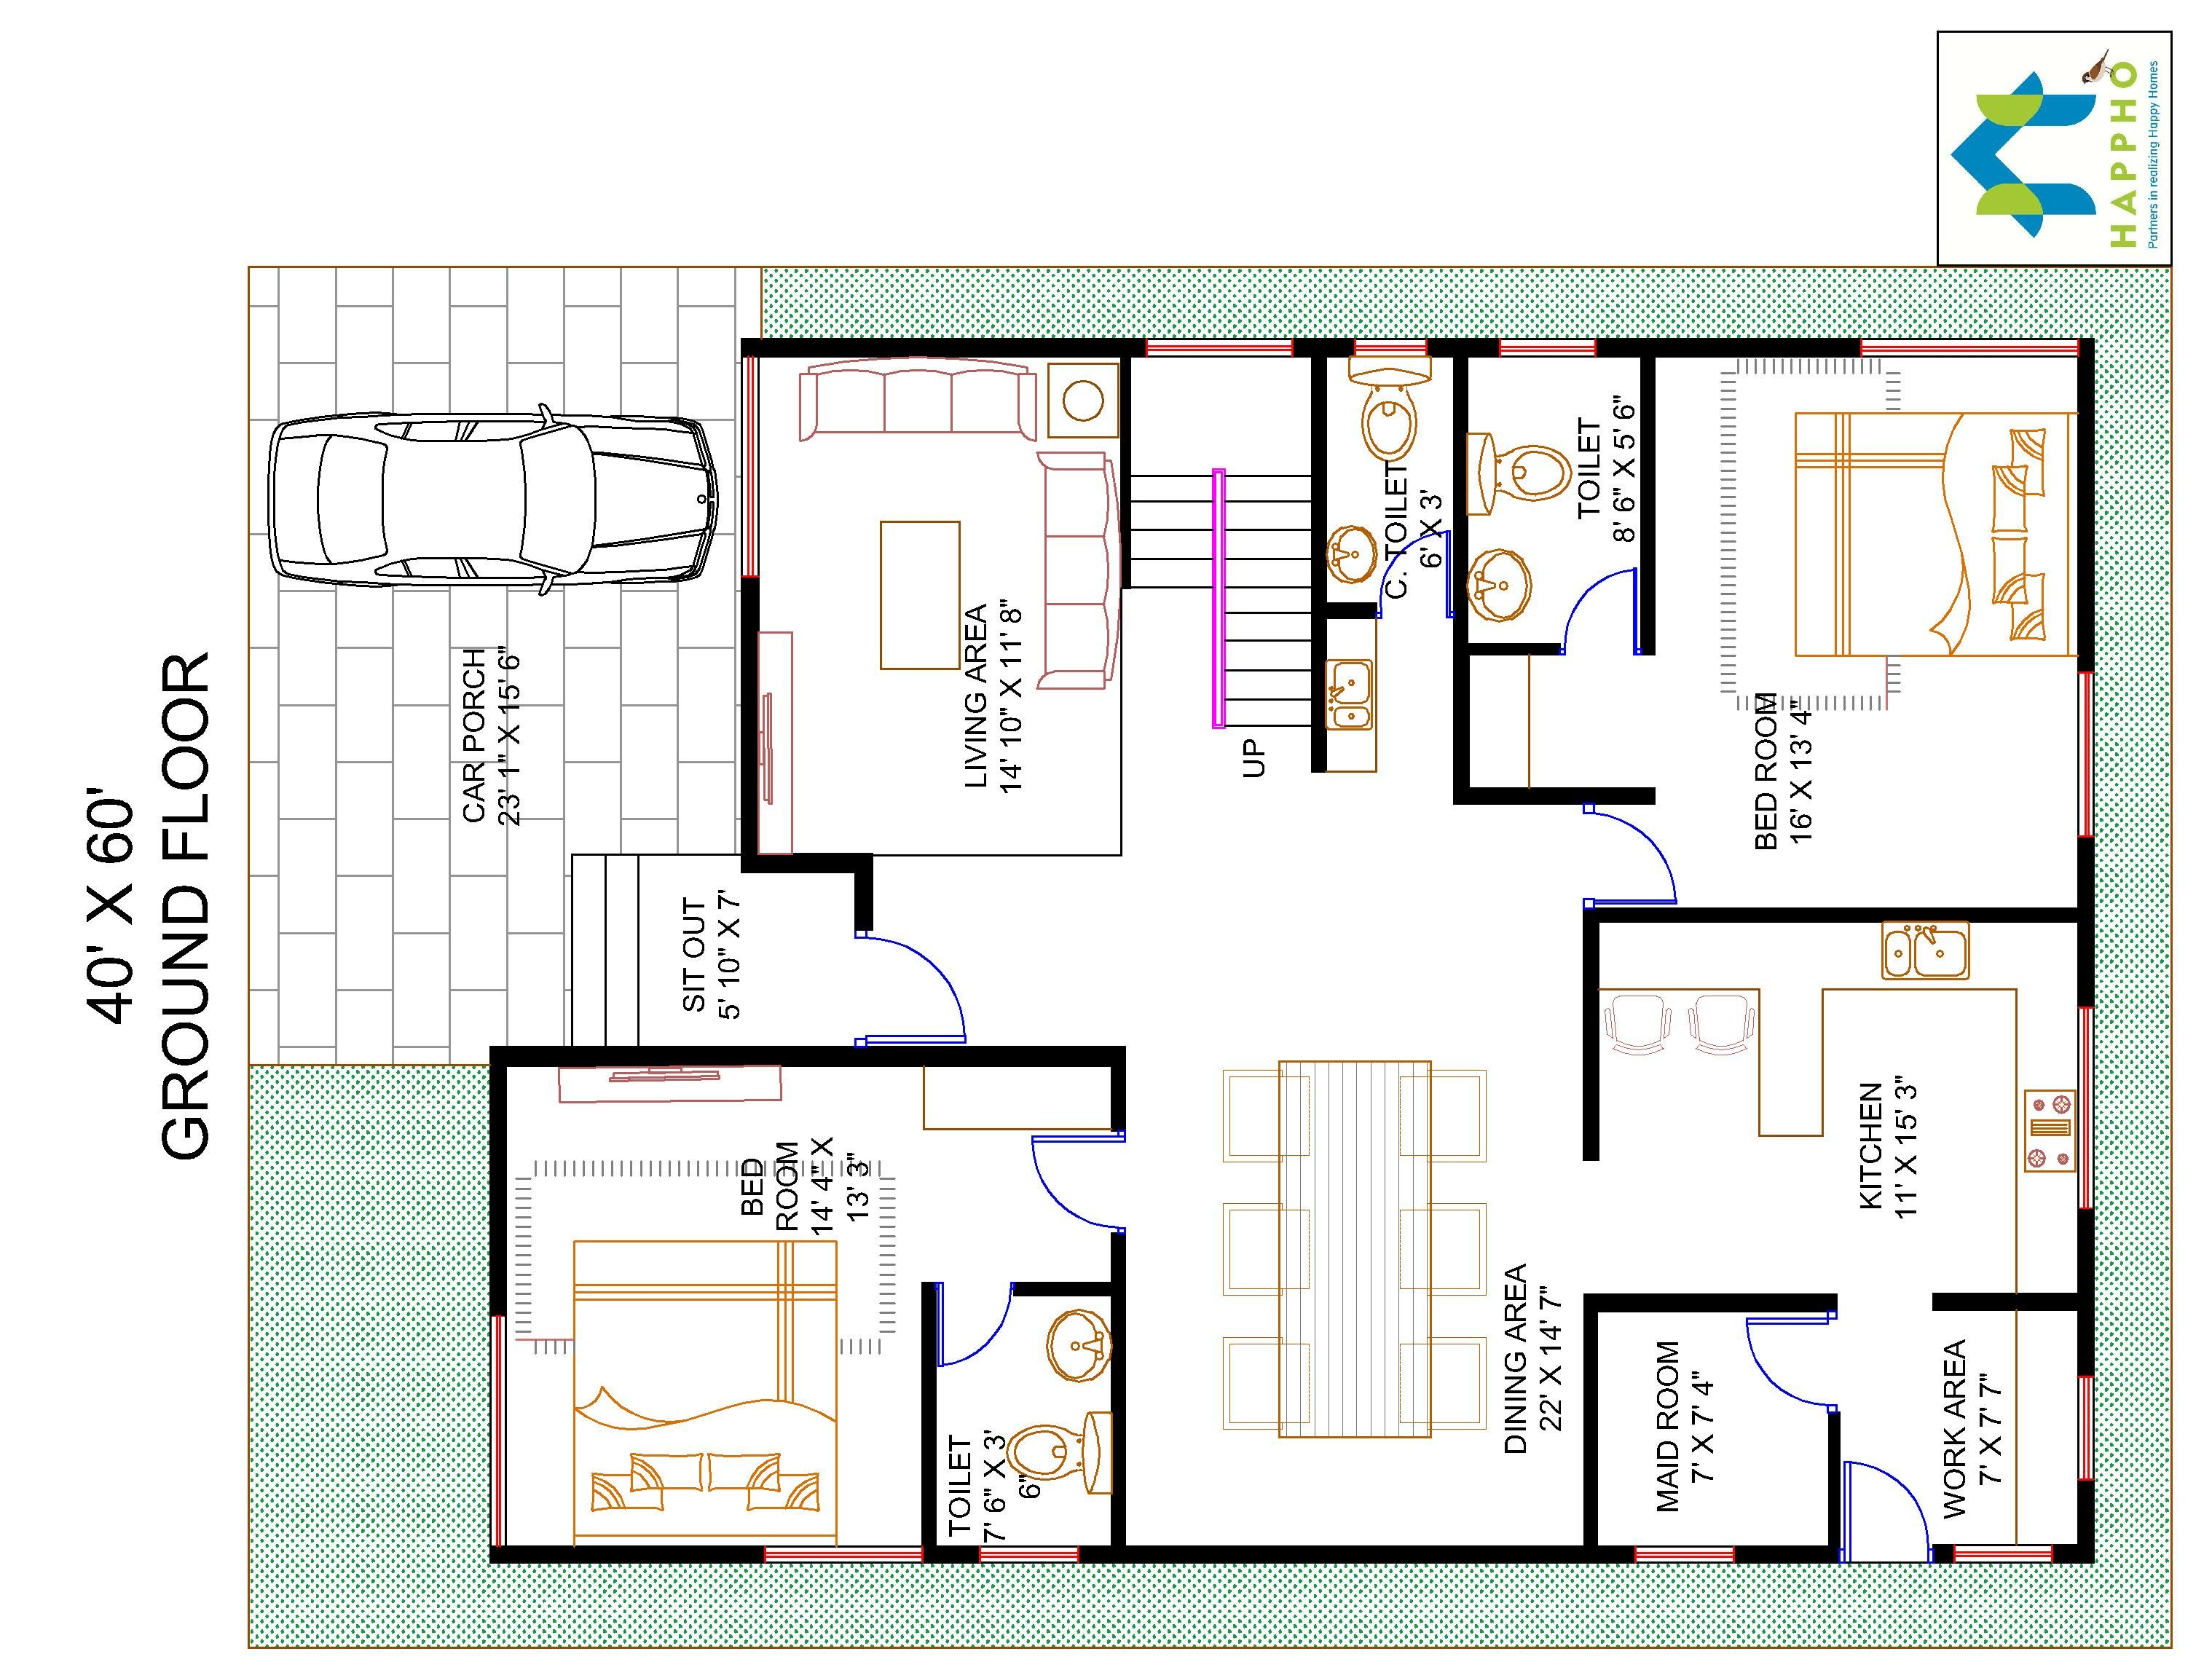 4 bhk floor plan for 40 x 60 plot 2400 square feet 267 for House plan for 30 feet by 40 feet plot